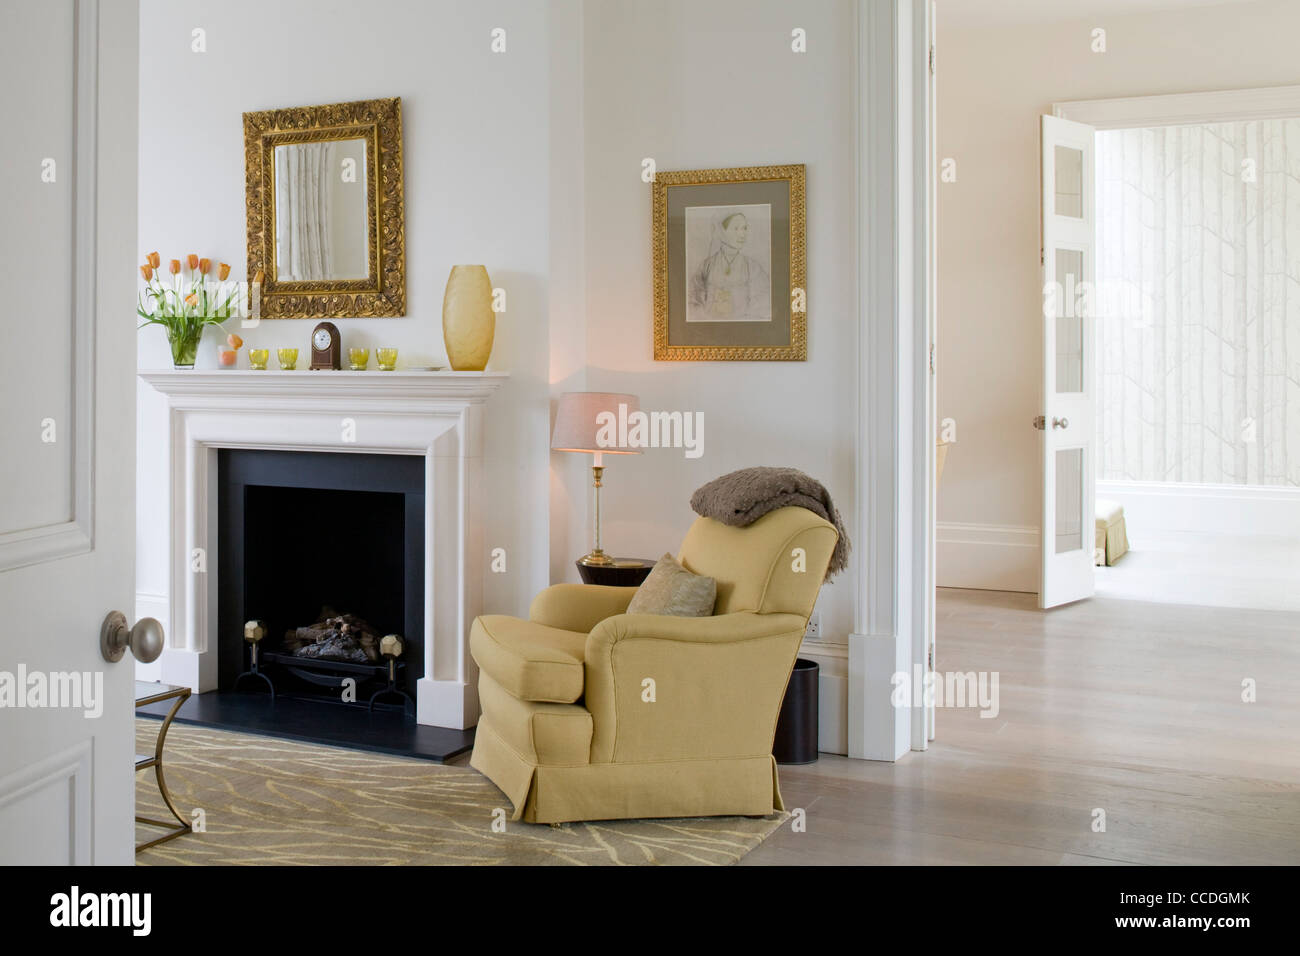 West London Private House 1900s Living Room   Stock Image